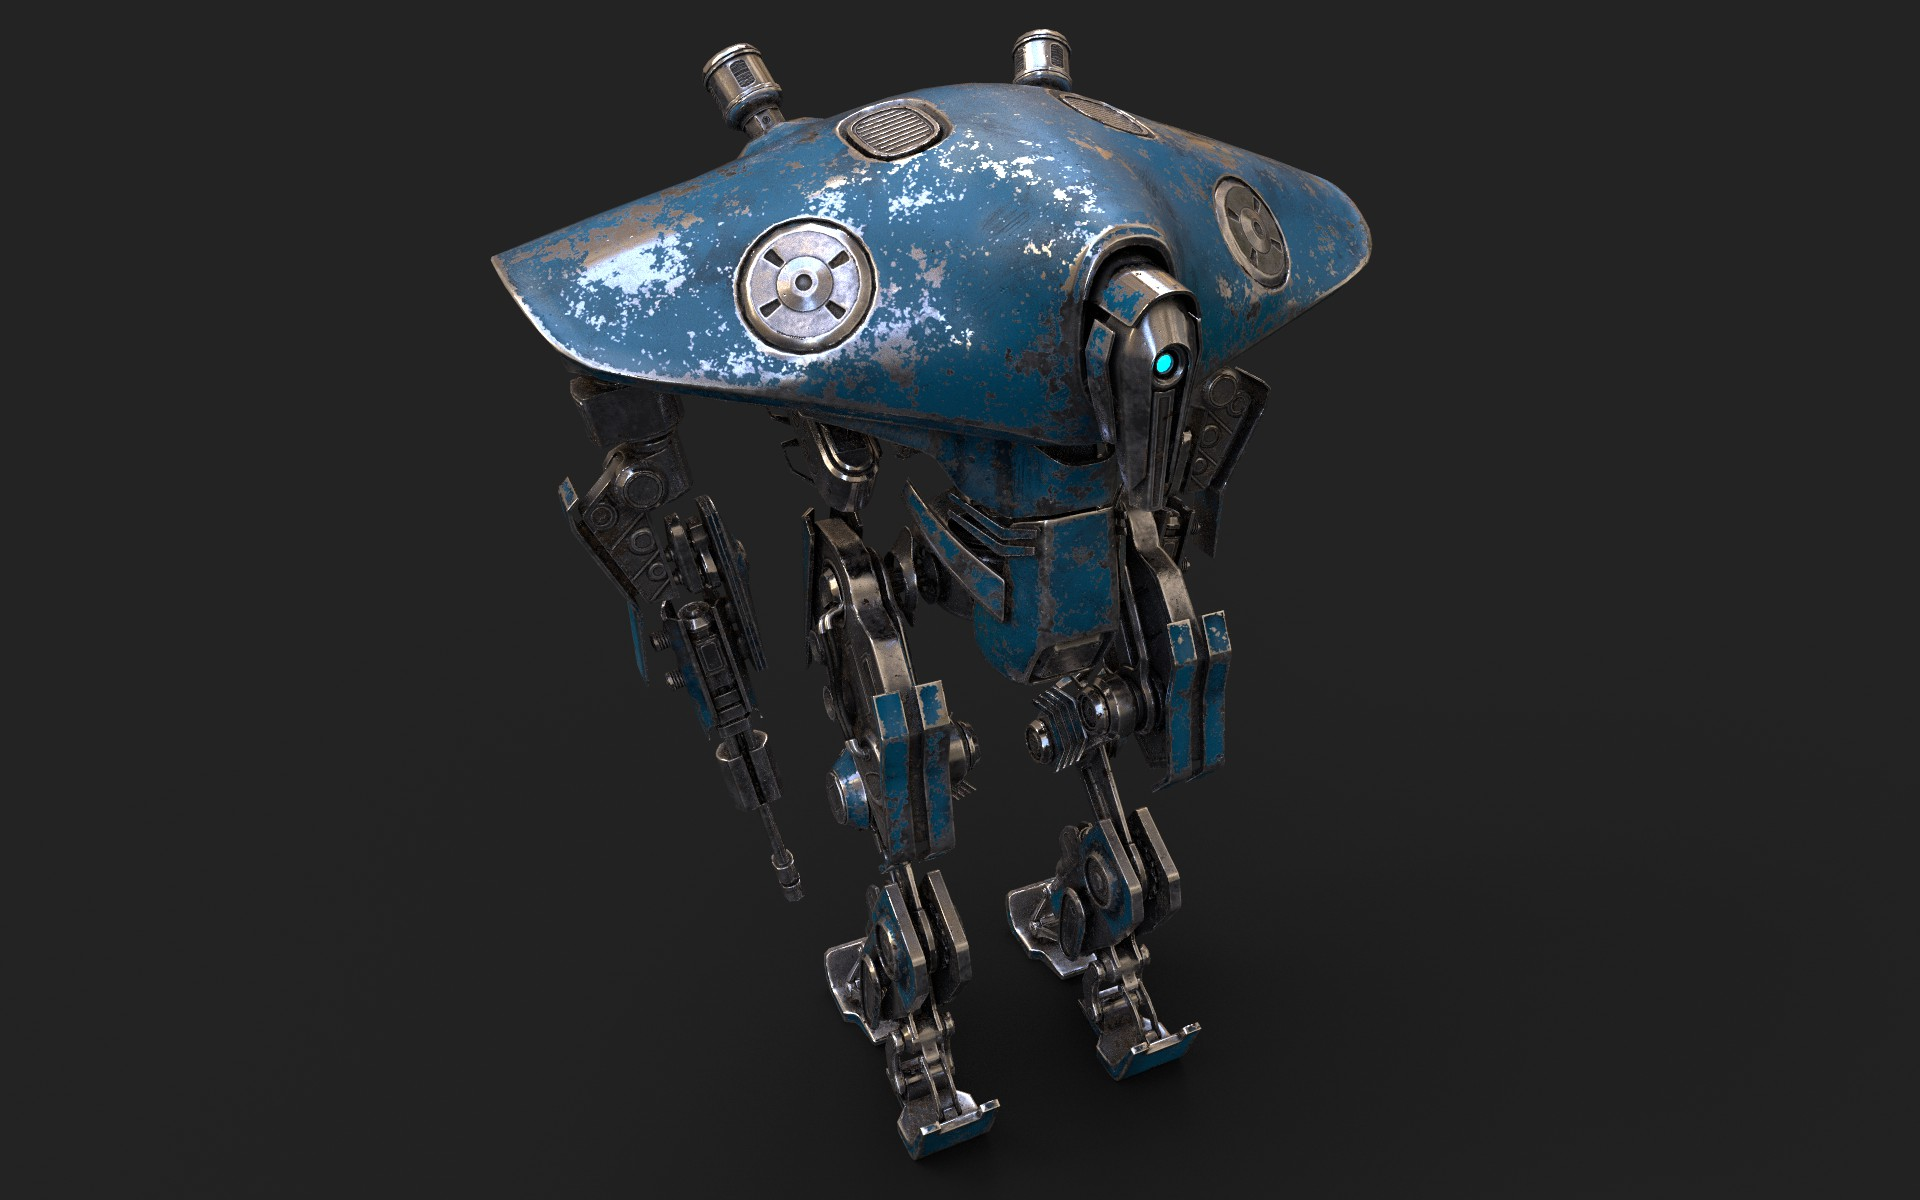 Heavy Robot VEX700 3d model 3ds max fbx obj 279576